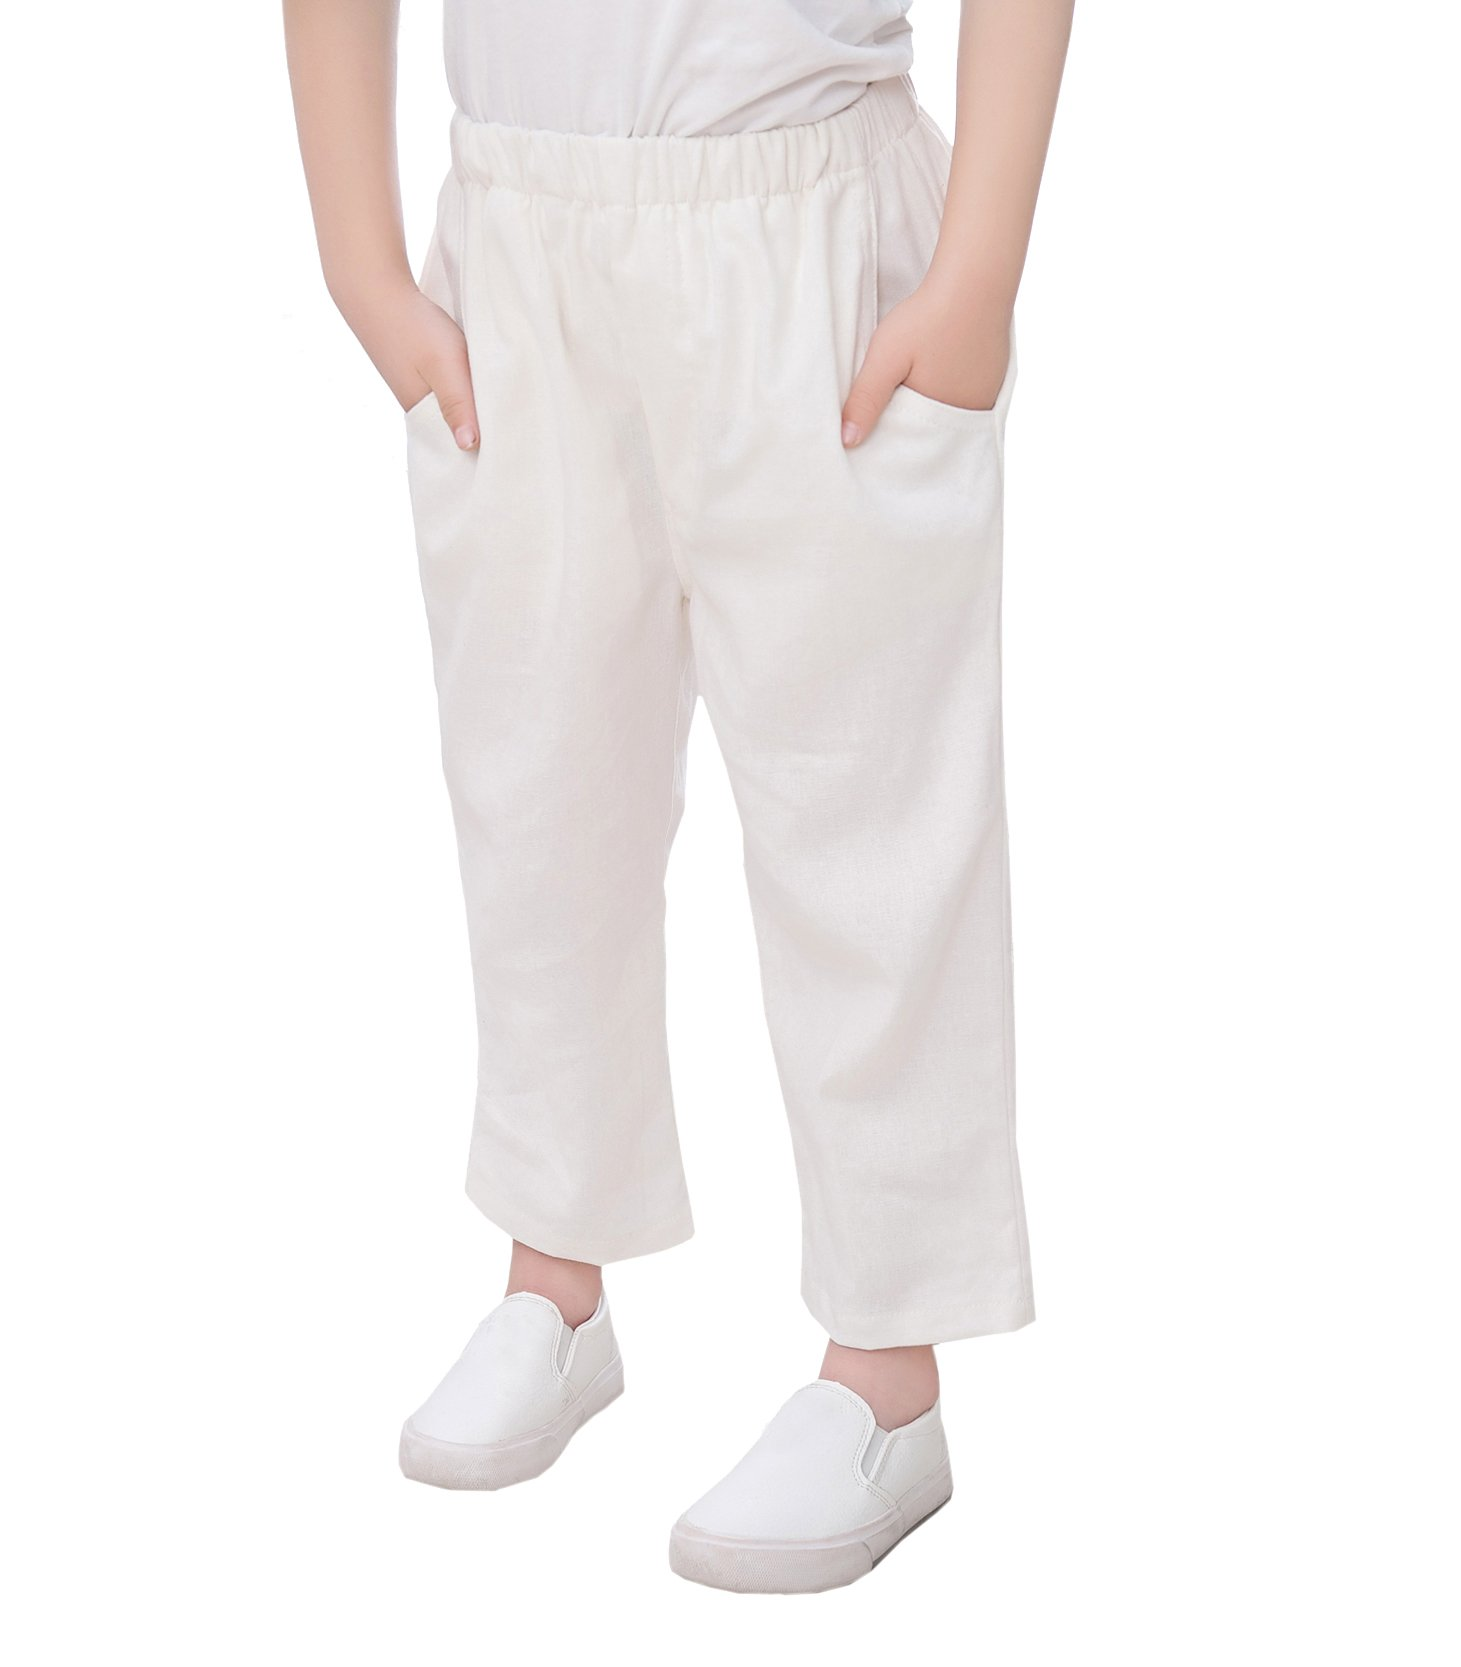 XueXian(TM) Little Boys Summer Spring Cotton Linen Solid Pant 3-9 Years(5-6 Years,White)